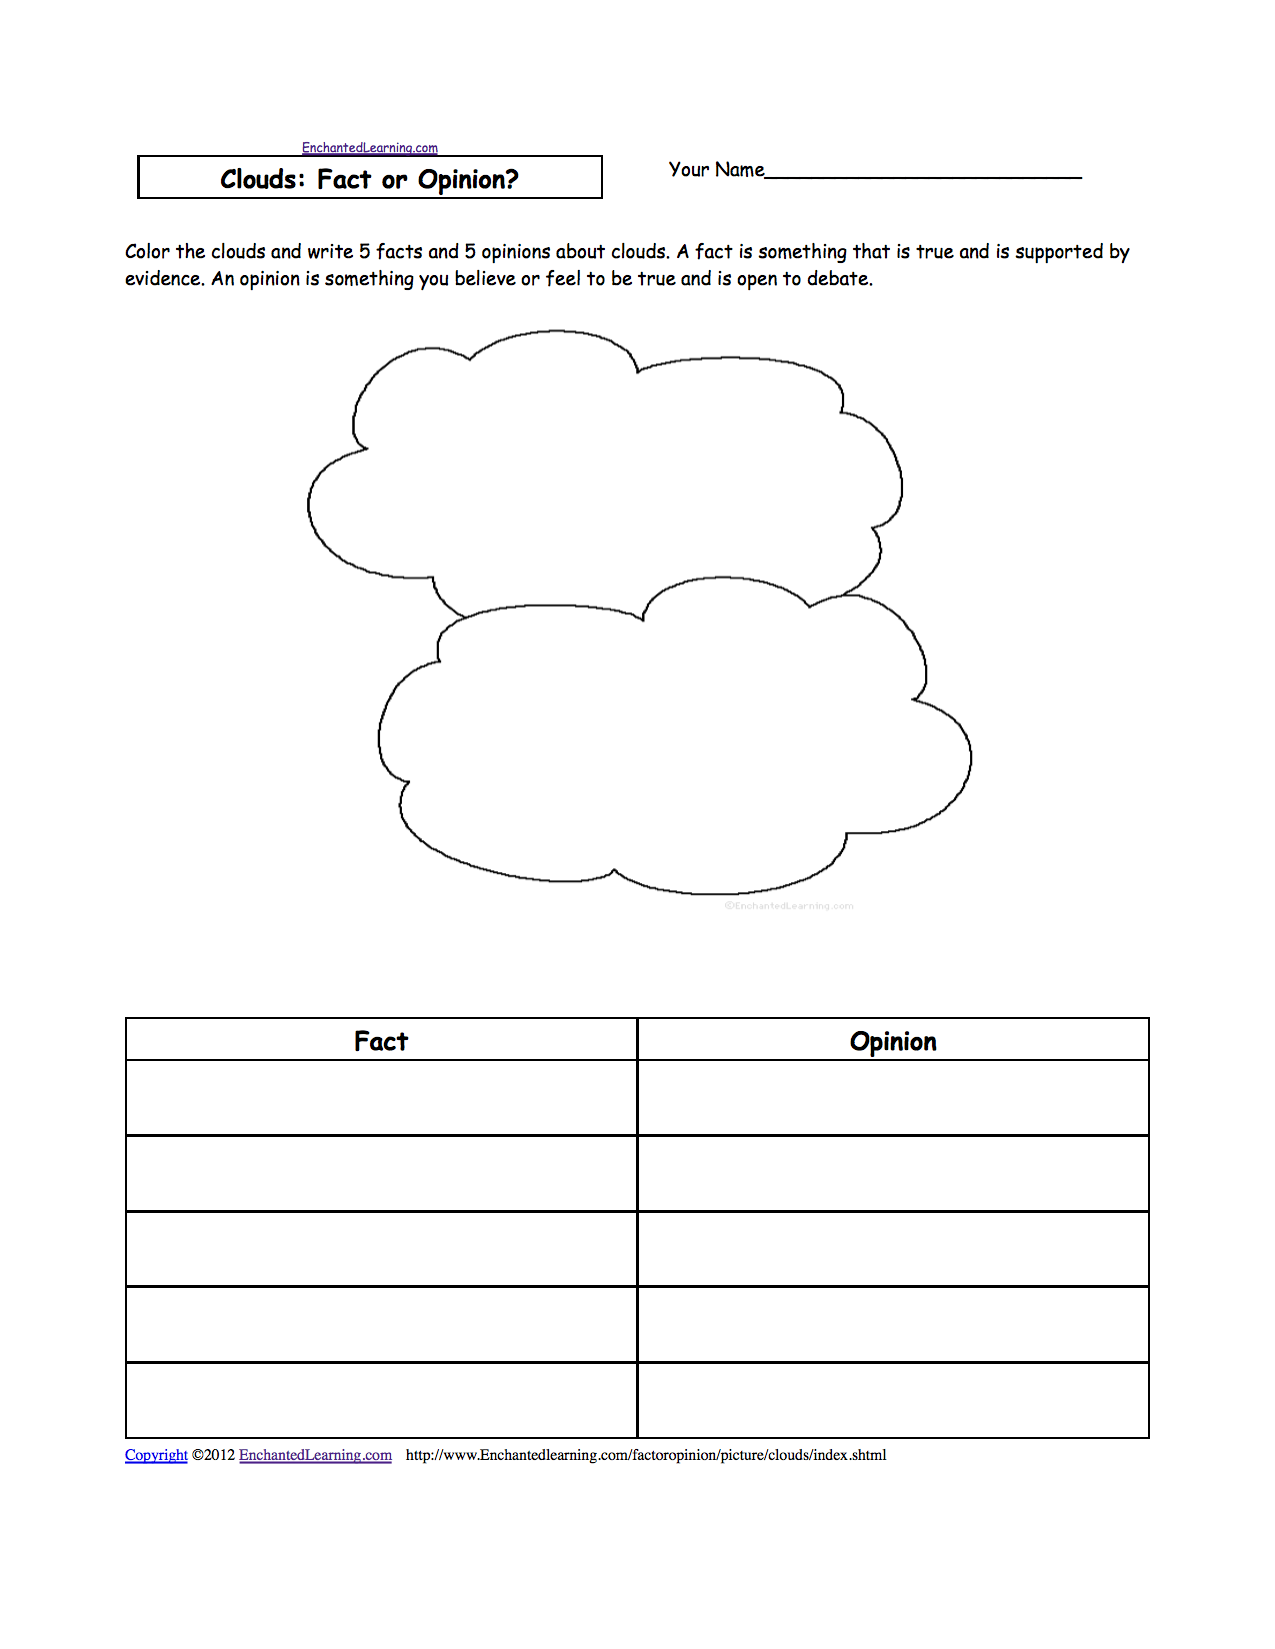 Cloud Formation Worksheet - Khayav